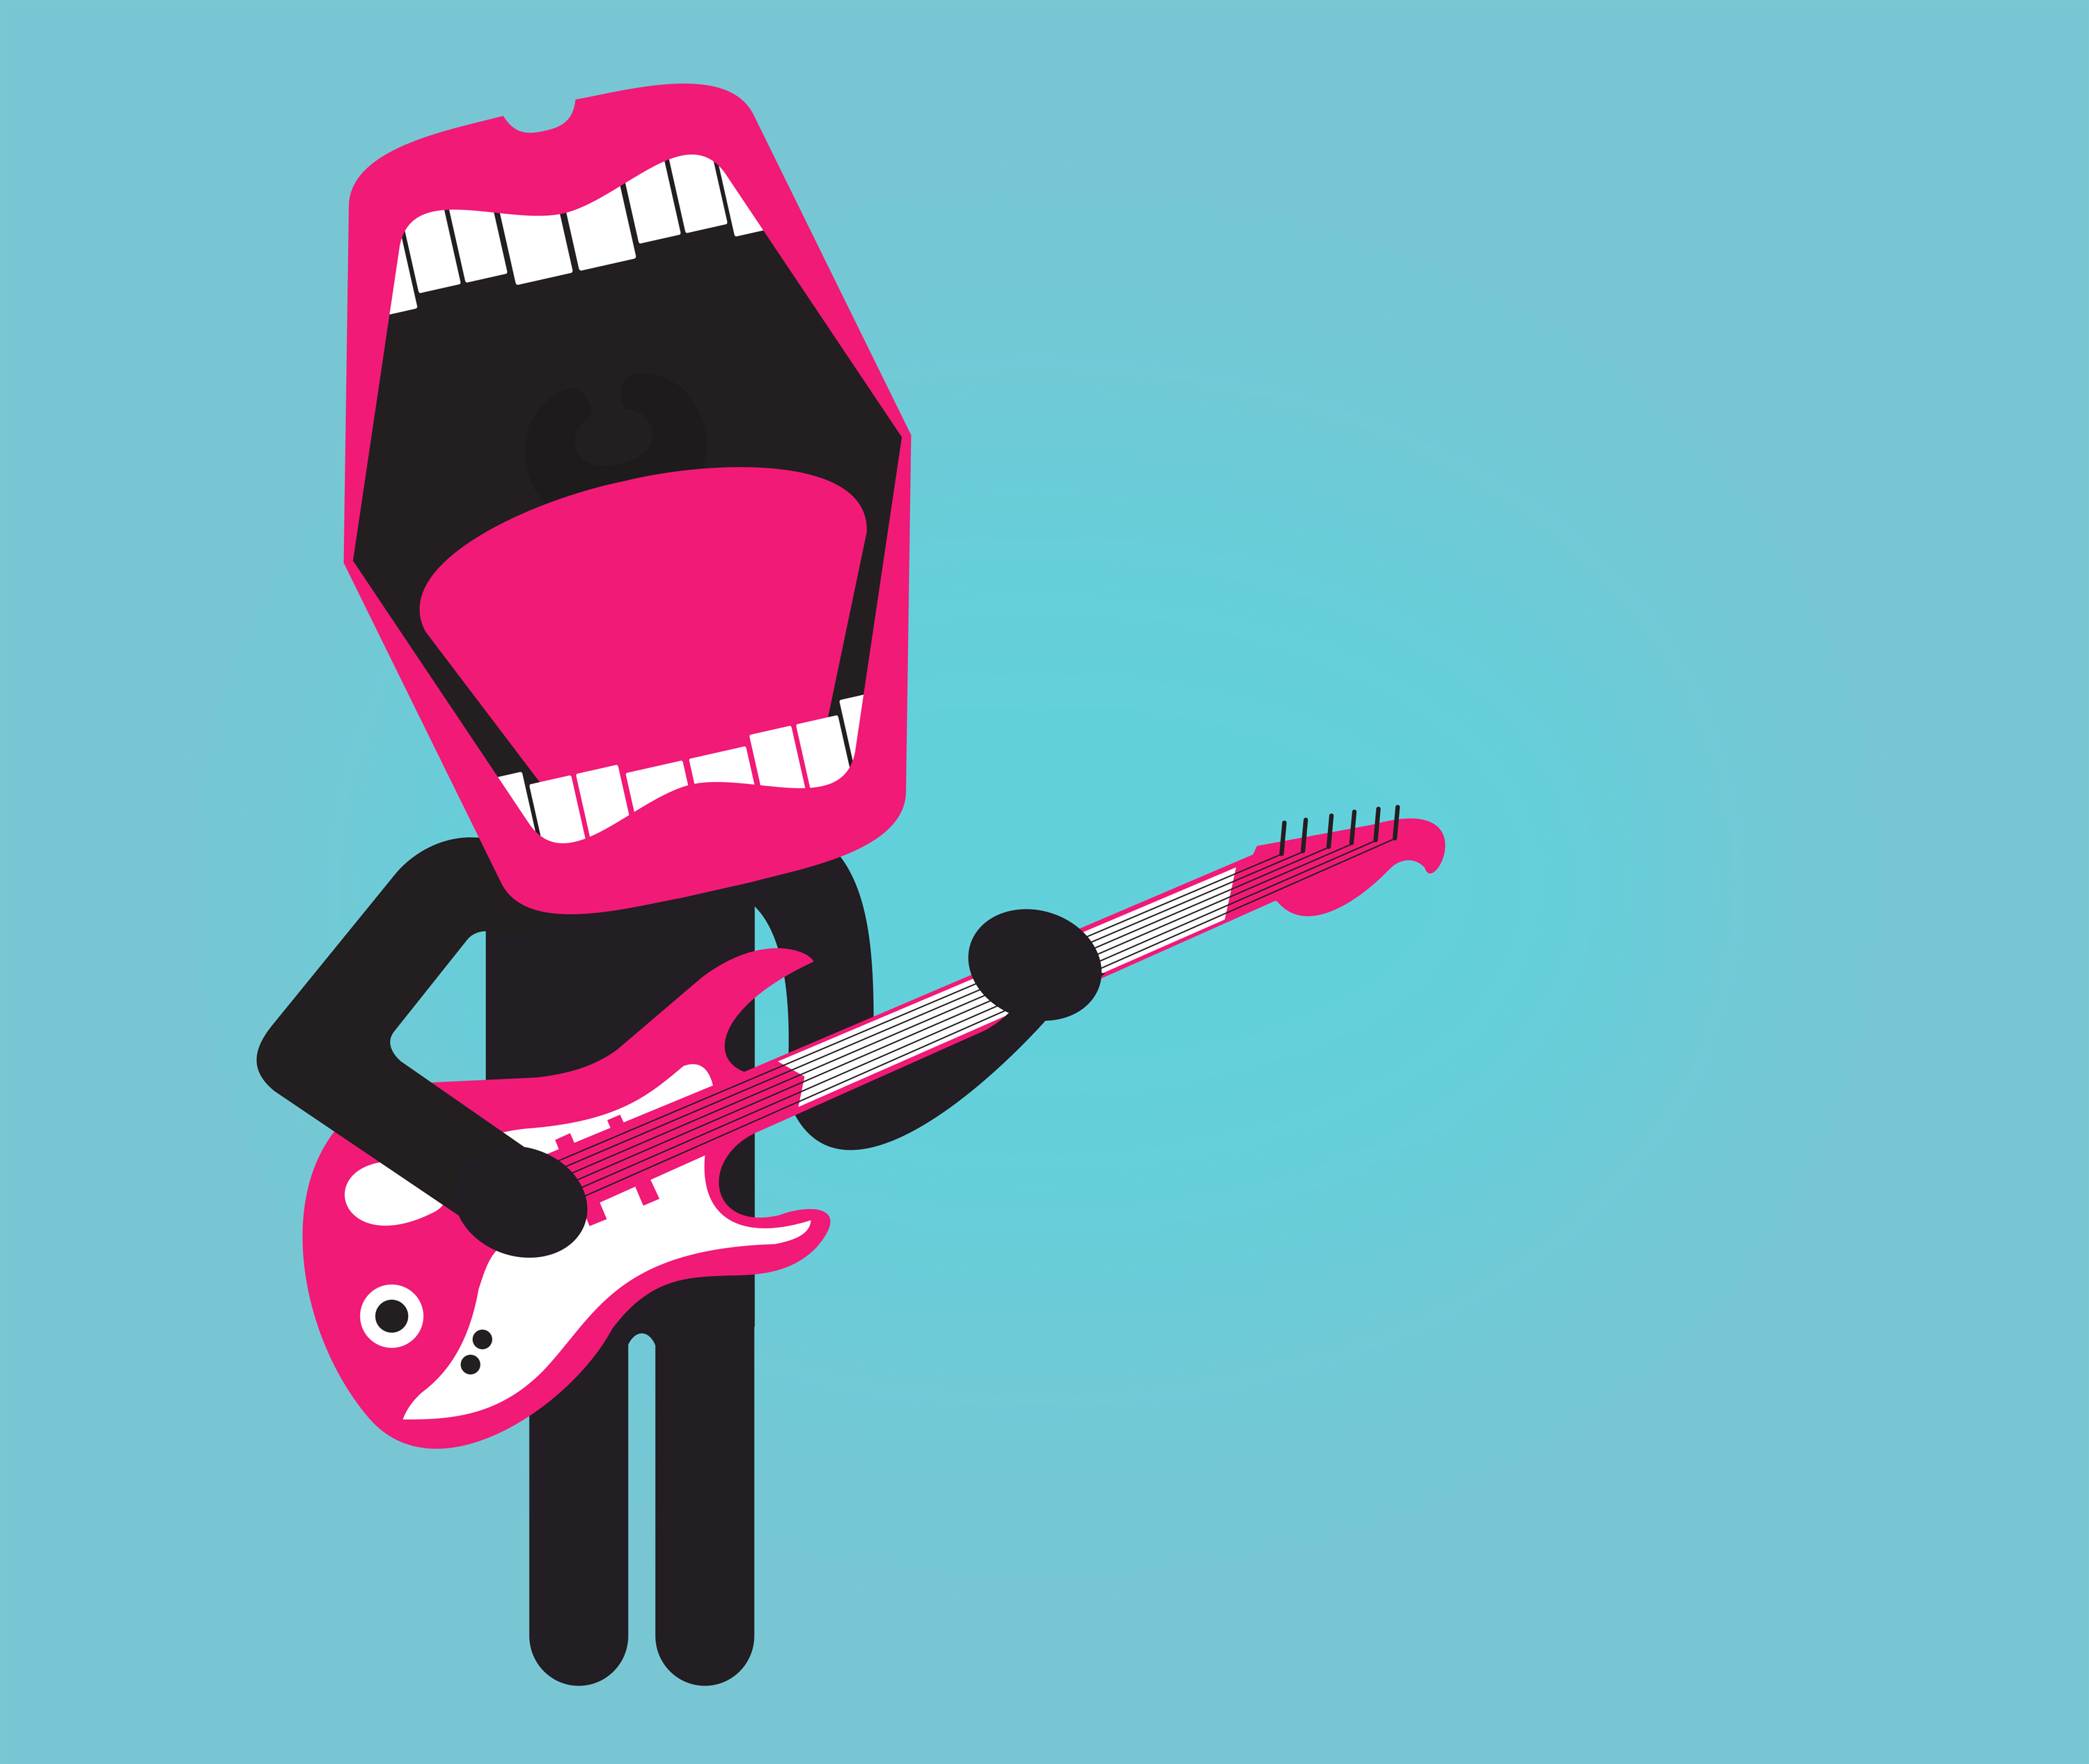 Stylized singer playing electric guitar photo